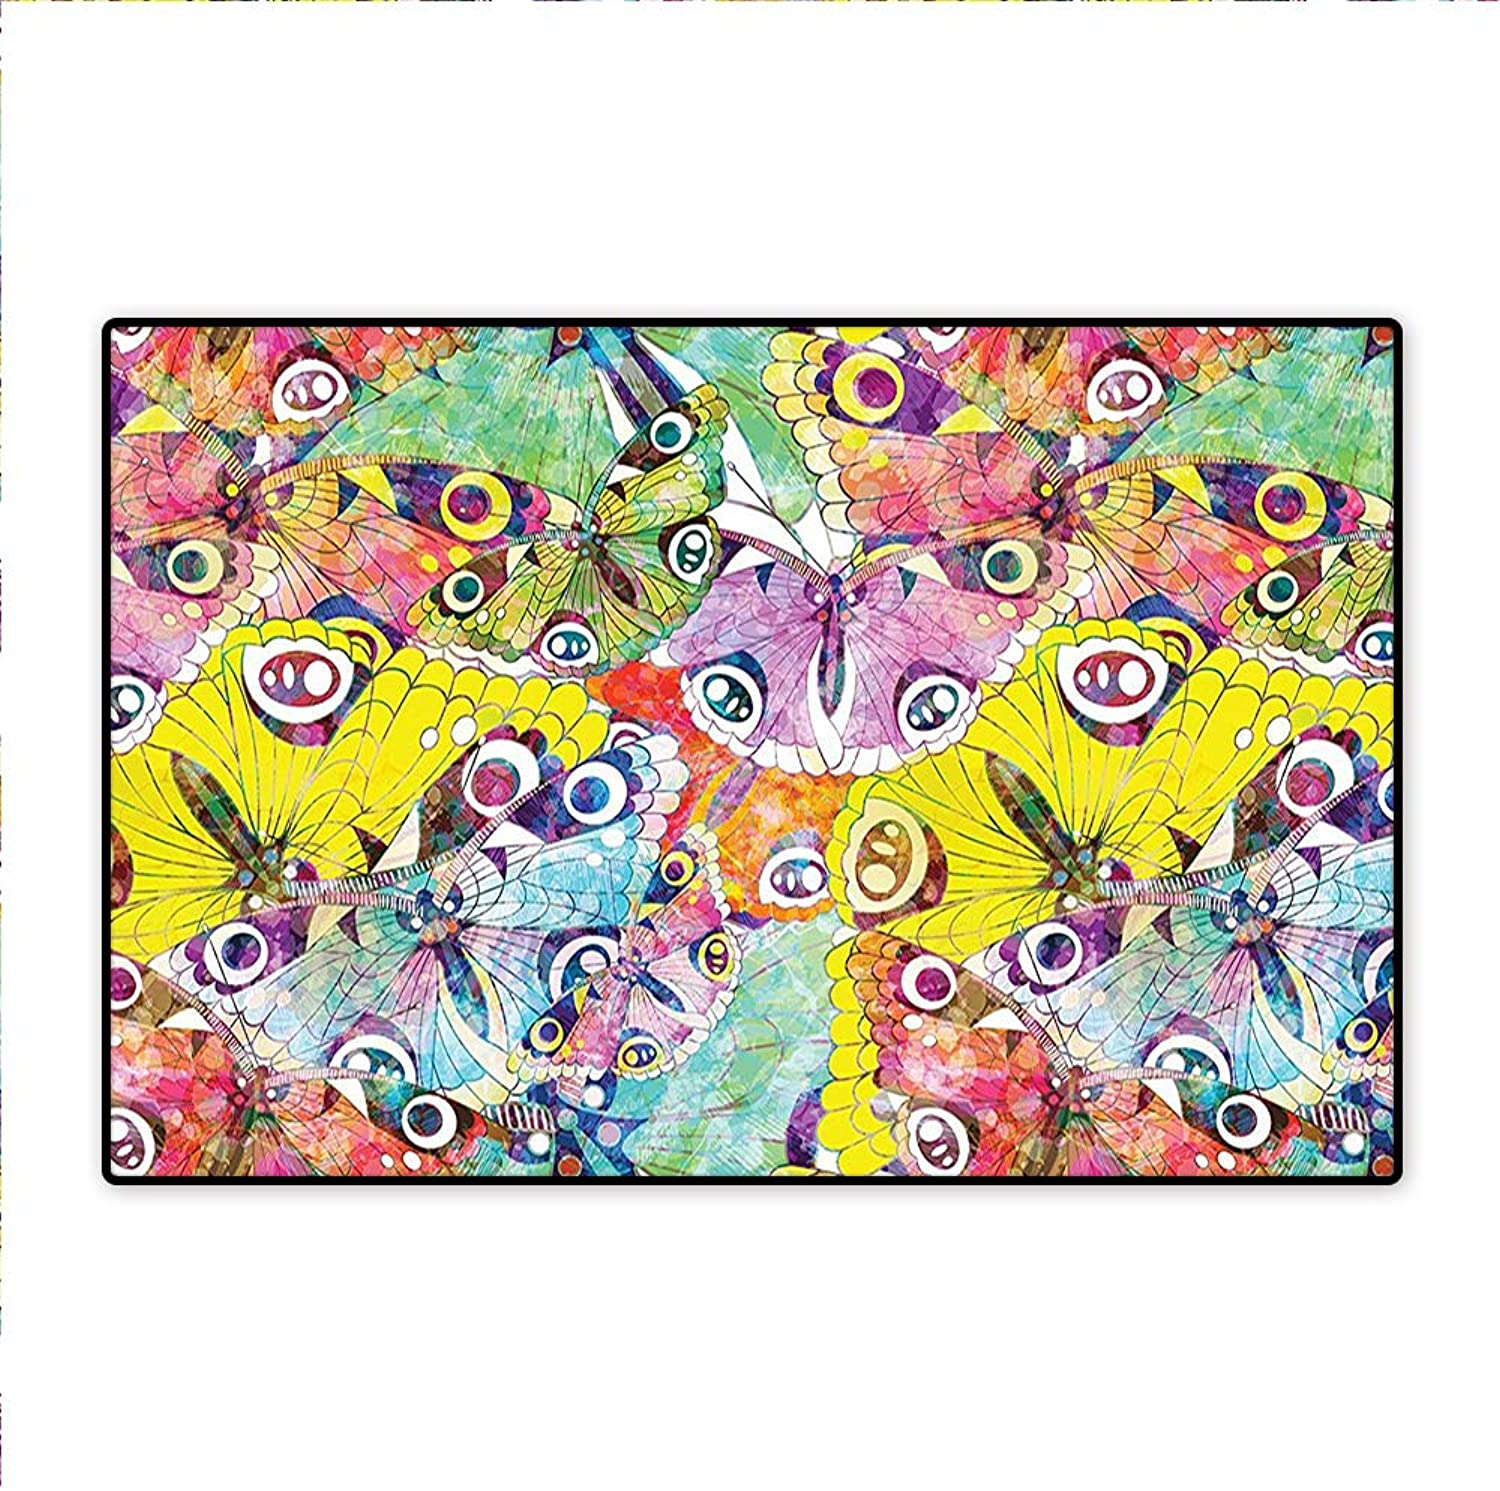 Area Rug Funky Curly Detailed Ethnic Doodles Tangled Trippy Pyschedelic Botanical Nature color Non-Toxic Non-Slip Reversible Waterproof 5'x6'